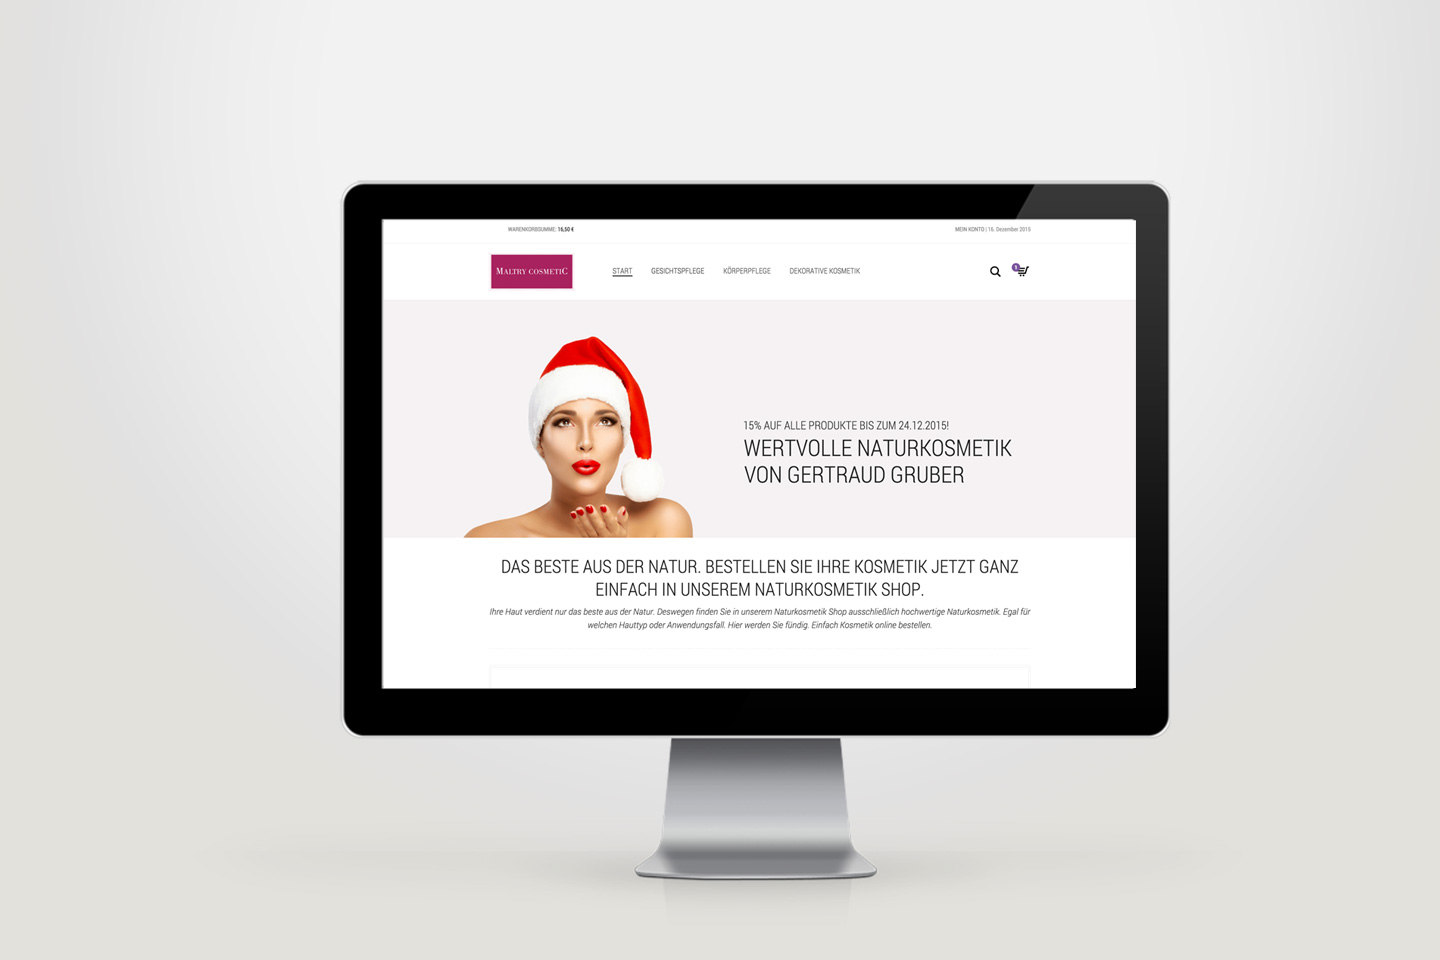 Maltry Cosmetic Onlinshop